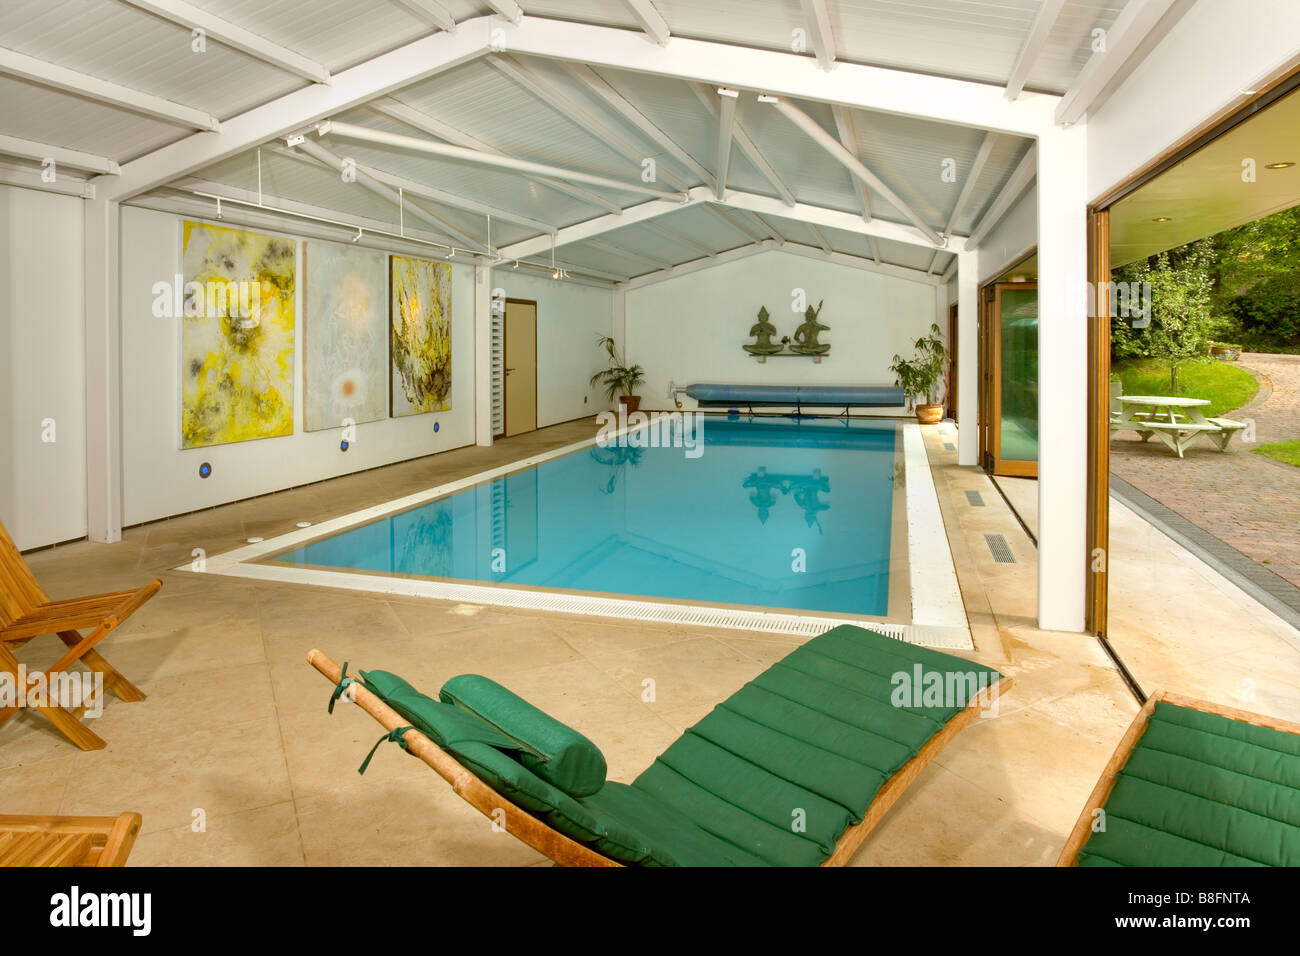 Uk A House Interior Private Indoor Swimming Pool Stock Photo Alamy